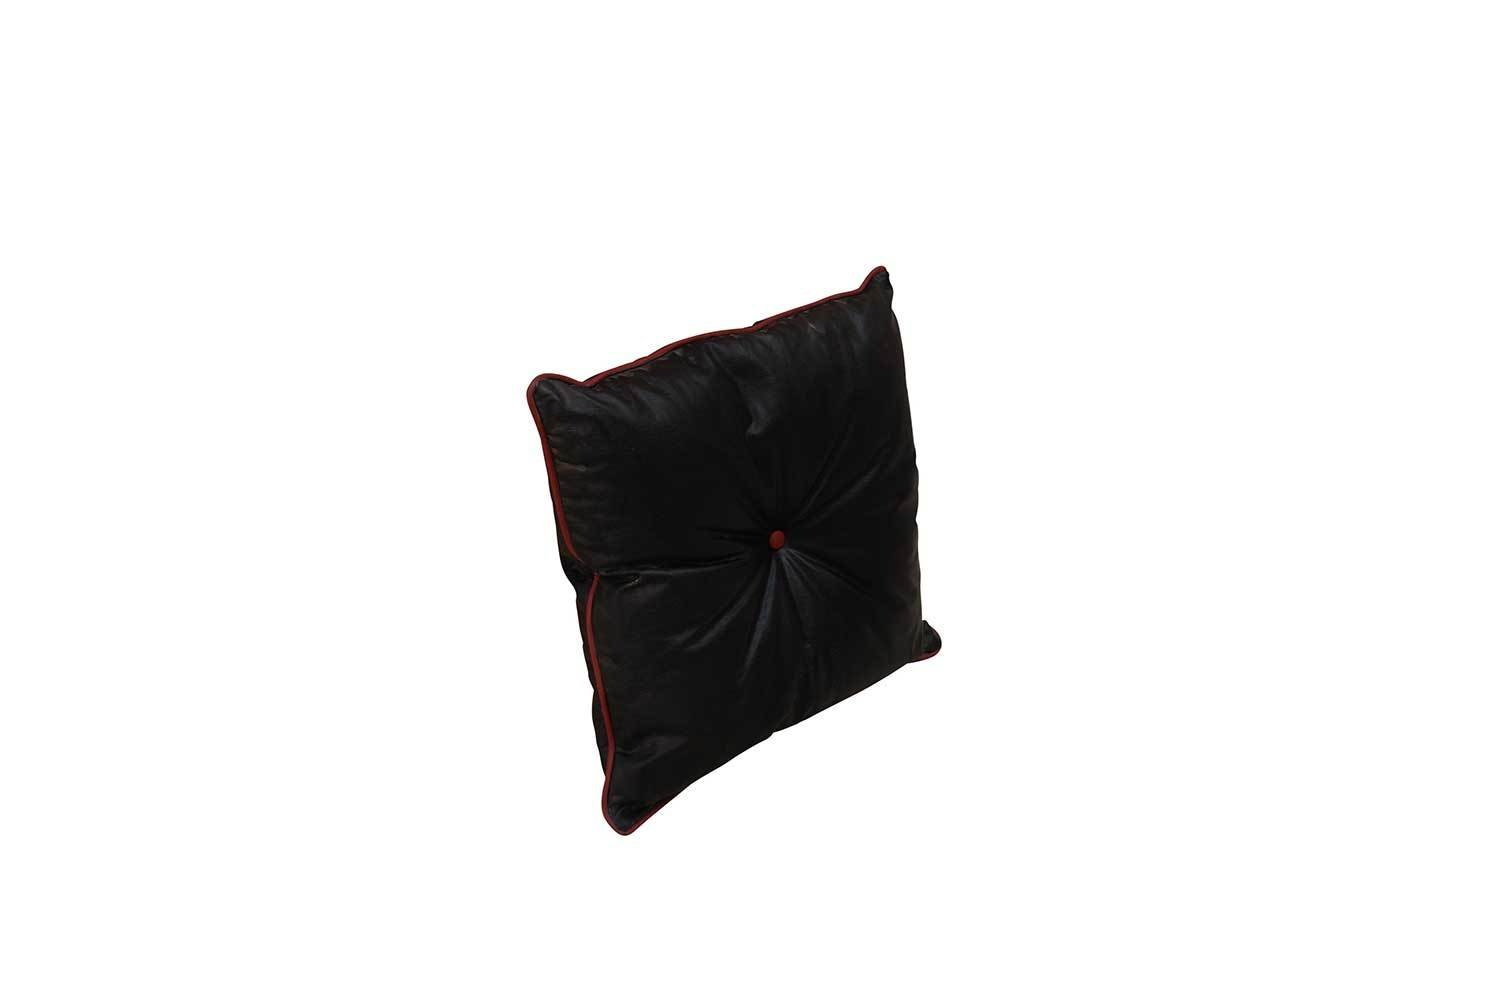 Pillow-Black with Red Piping 6455